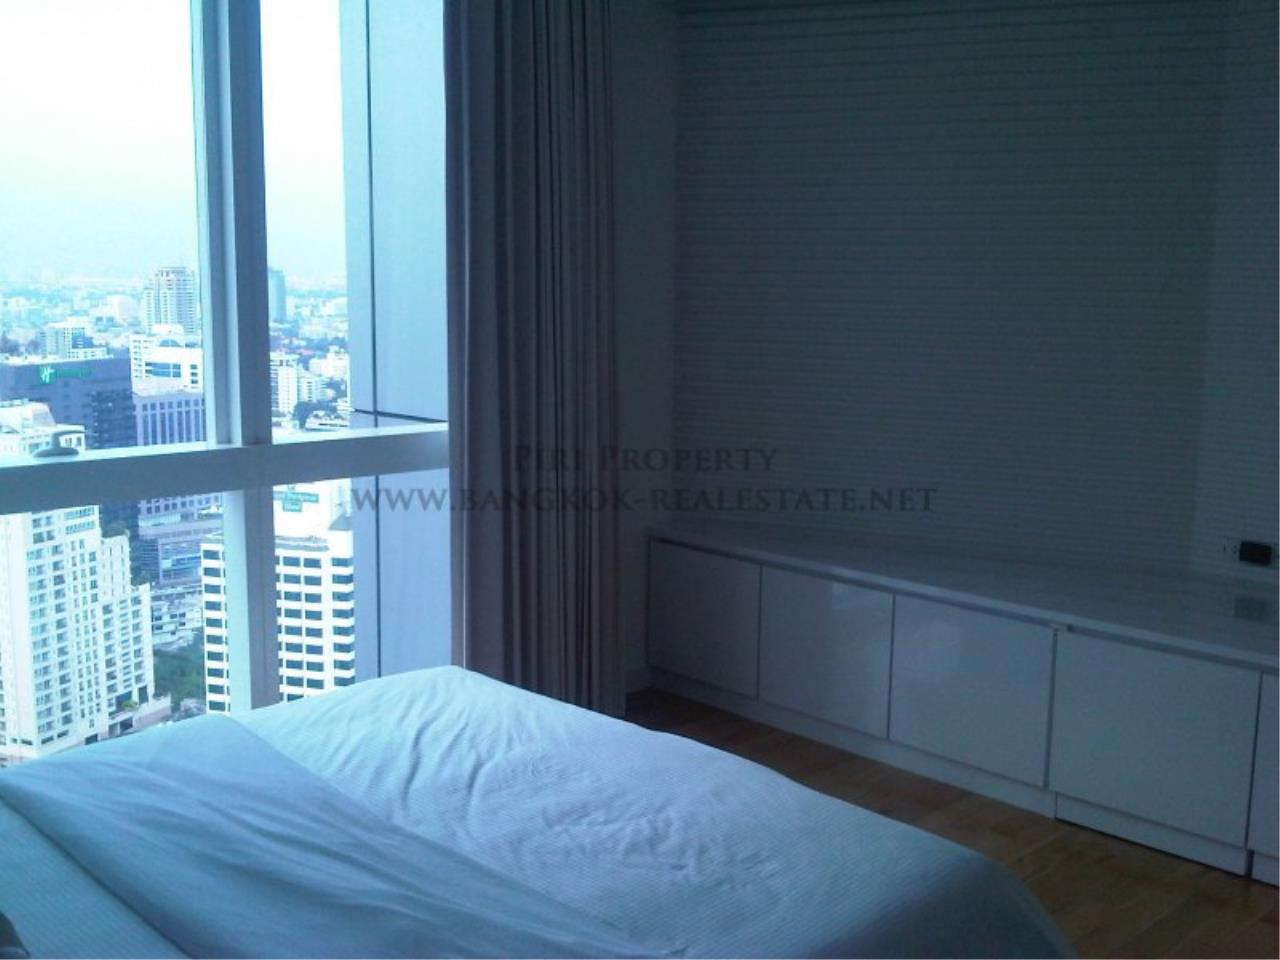 Piri Property Agency's High Floor Condo - Millennium Reisdence One Bedroom for Rent - 37th Floor 4